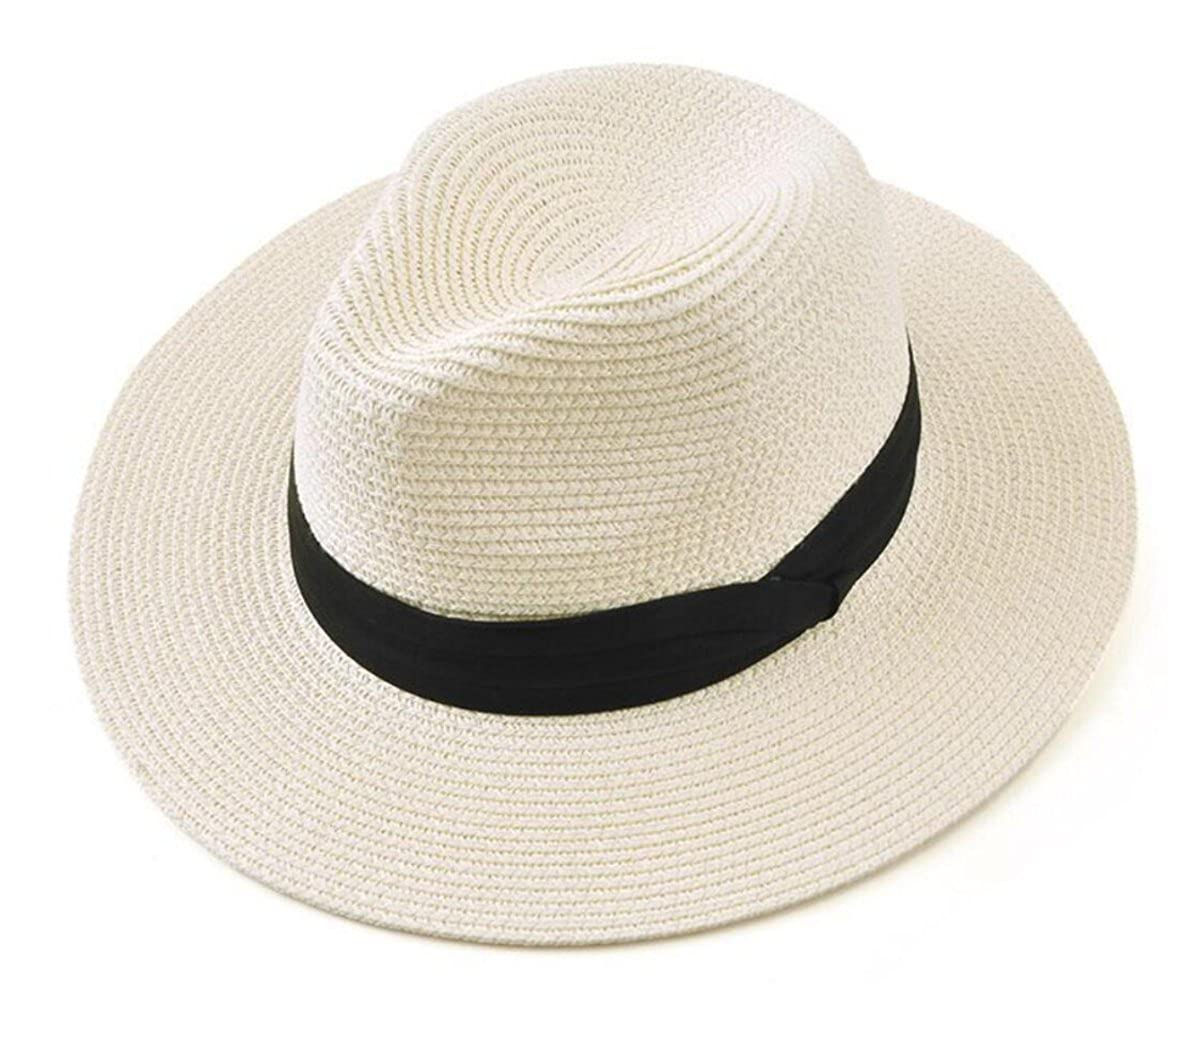 Tomily Women's Panama Hat Foldable Packable Straw Beach Summer Fedora Sun Hat (Beige) MZS2-2